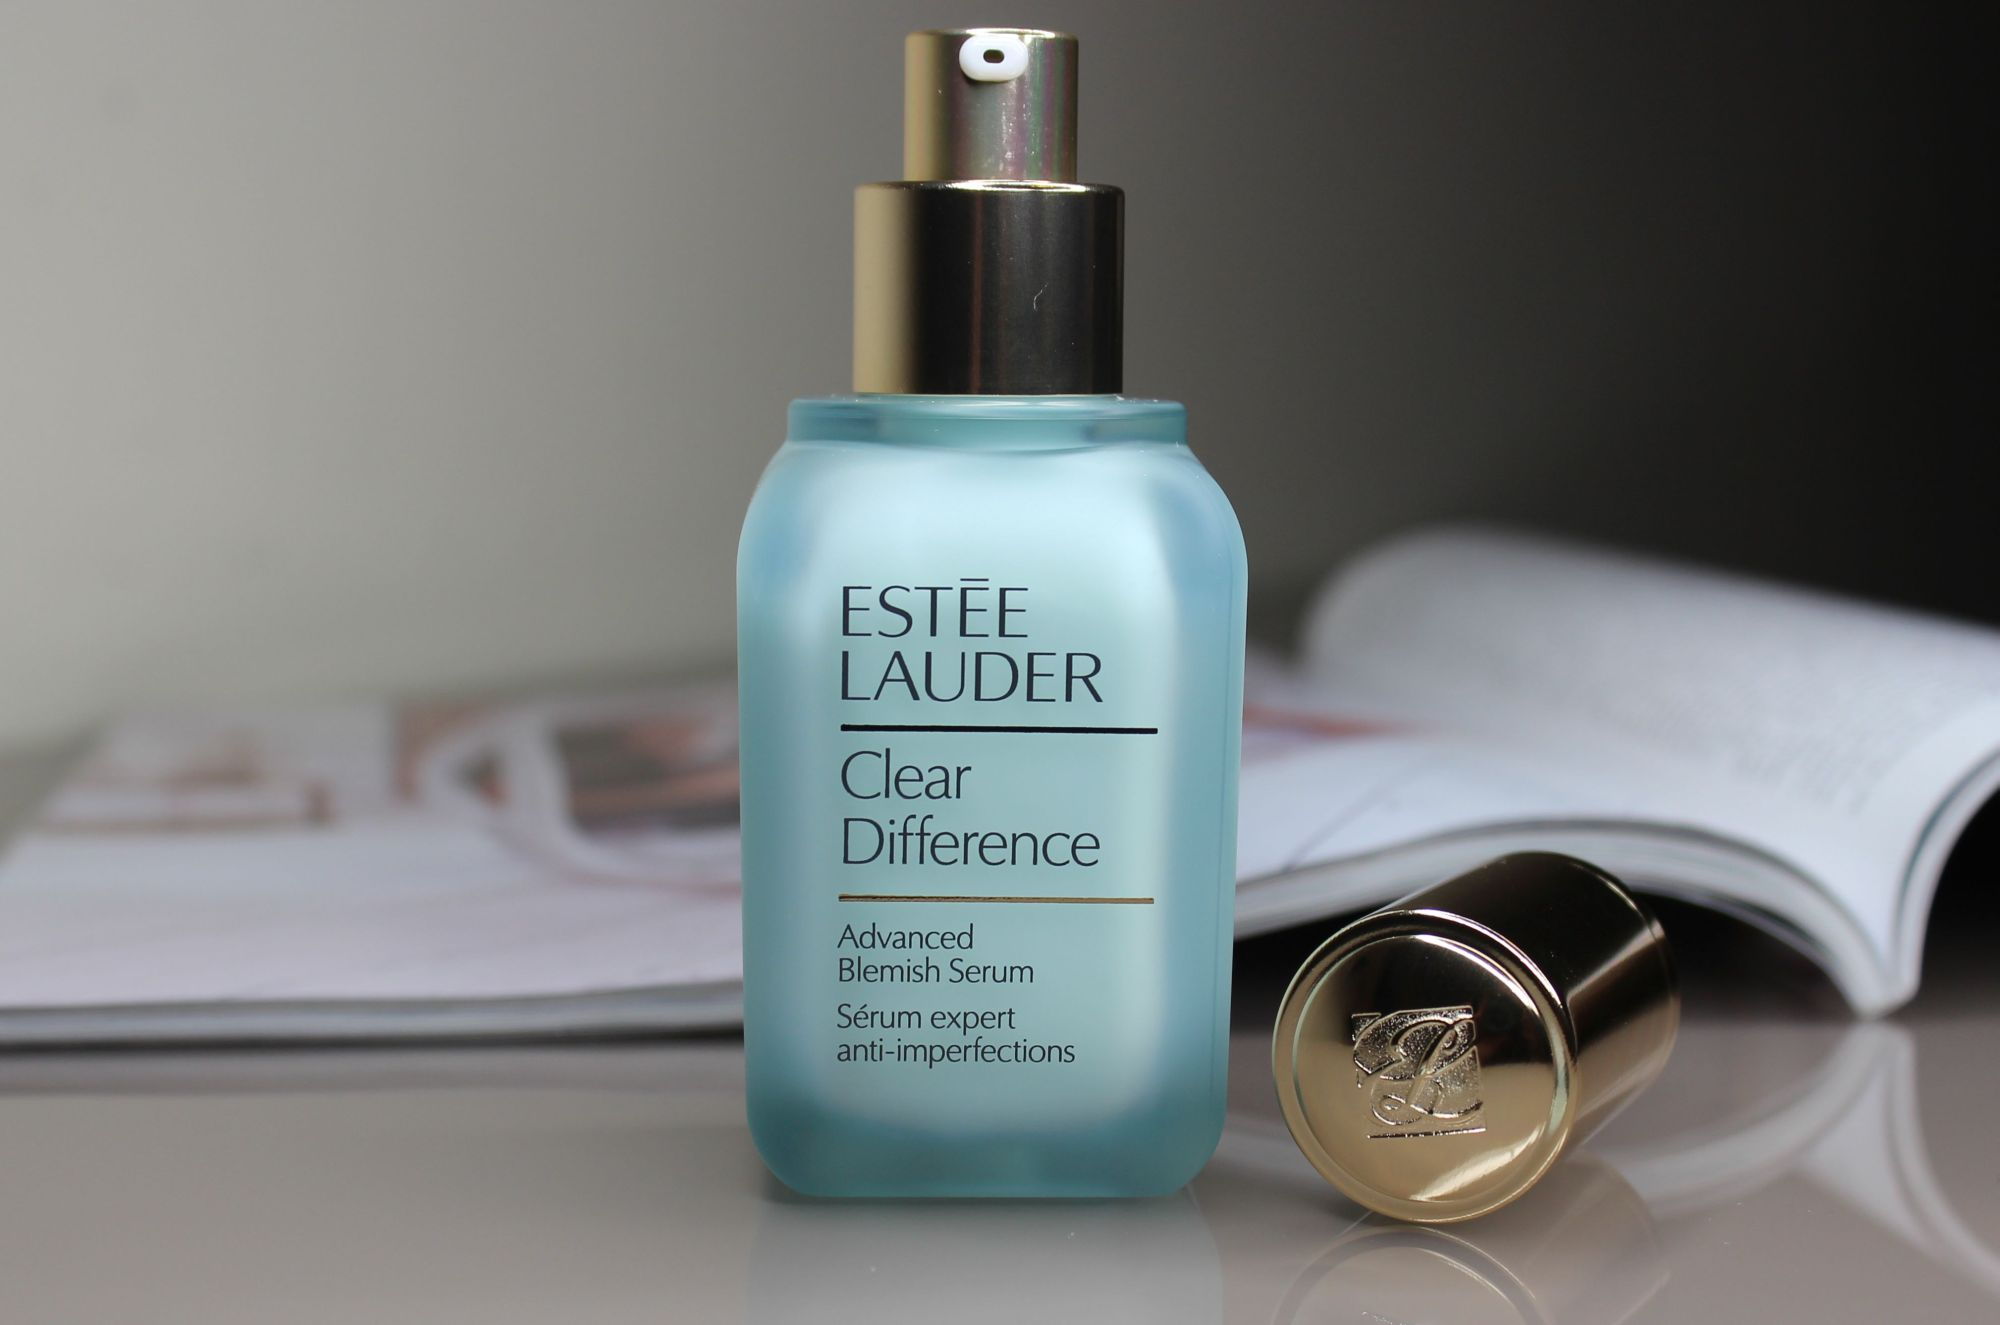 TOP 16 - Estee Lauder Clear Difference Advanced Blemish Serum 3